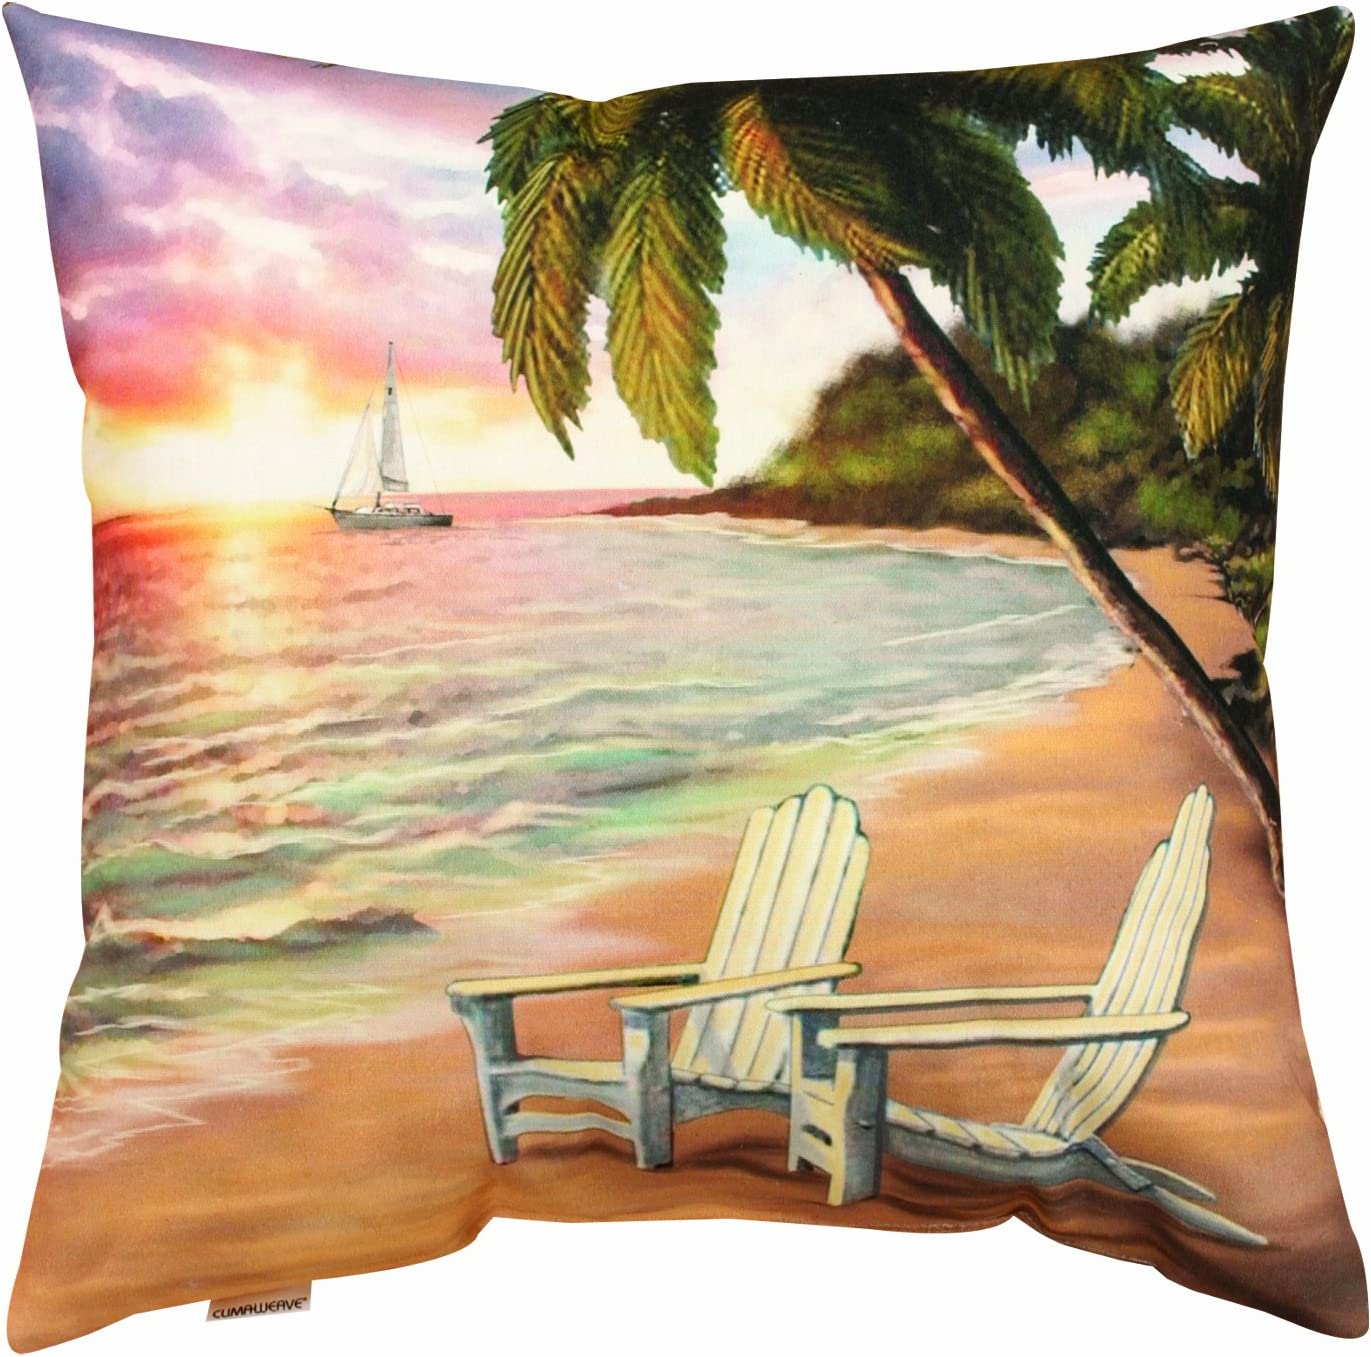 Manual Climaweave Indoor Outdoor Throw Pillow, Beach Scene Sailboat, 20 X 20-Inch